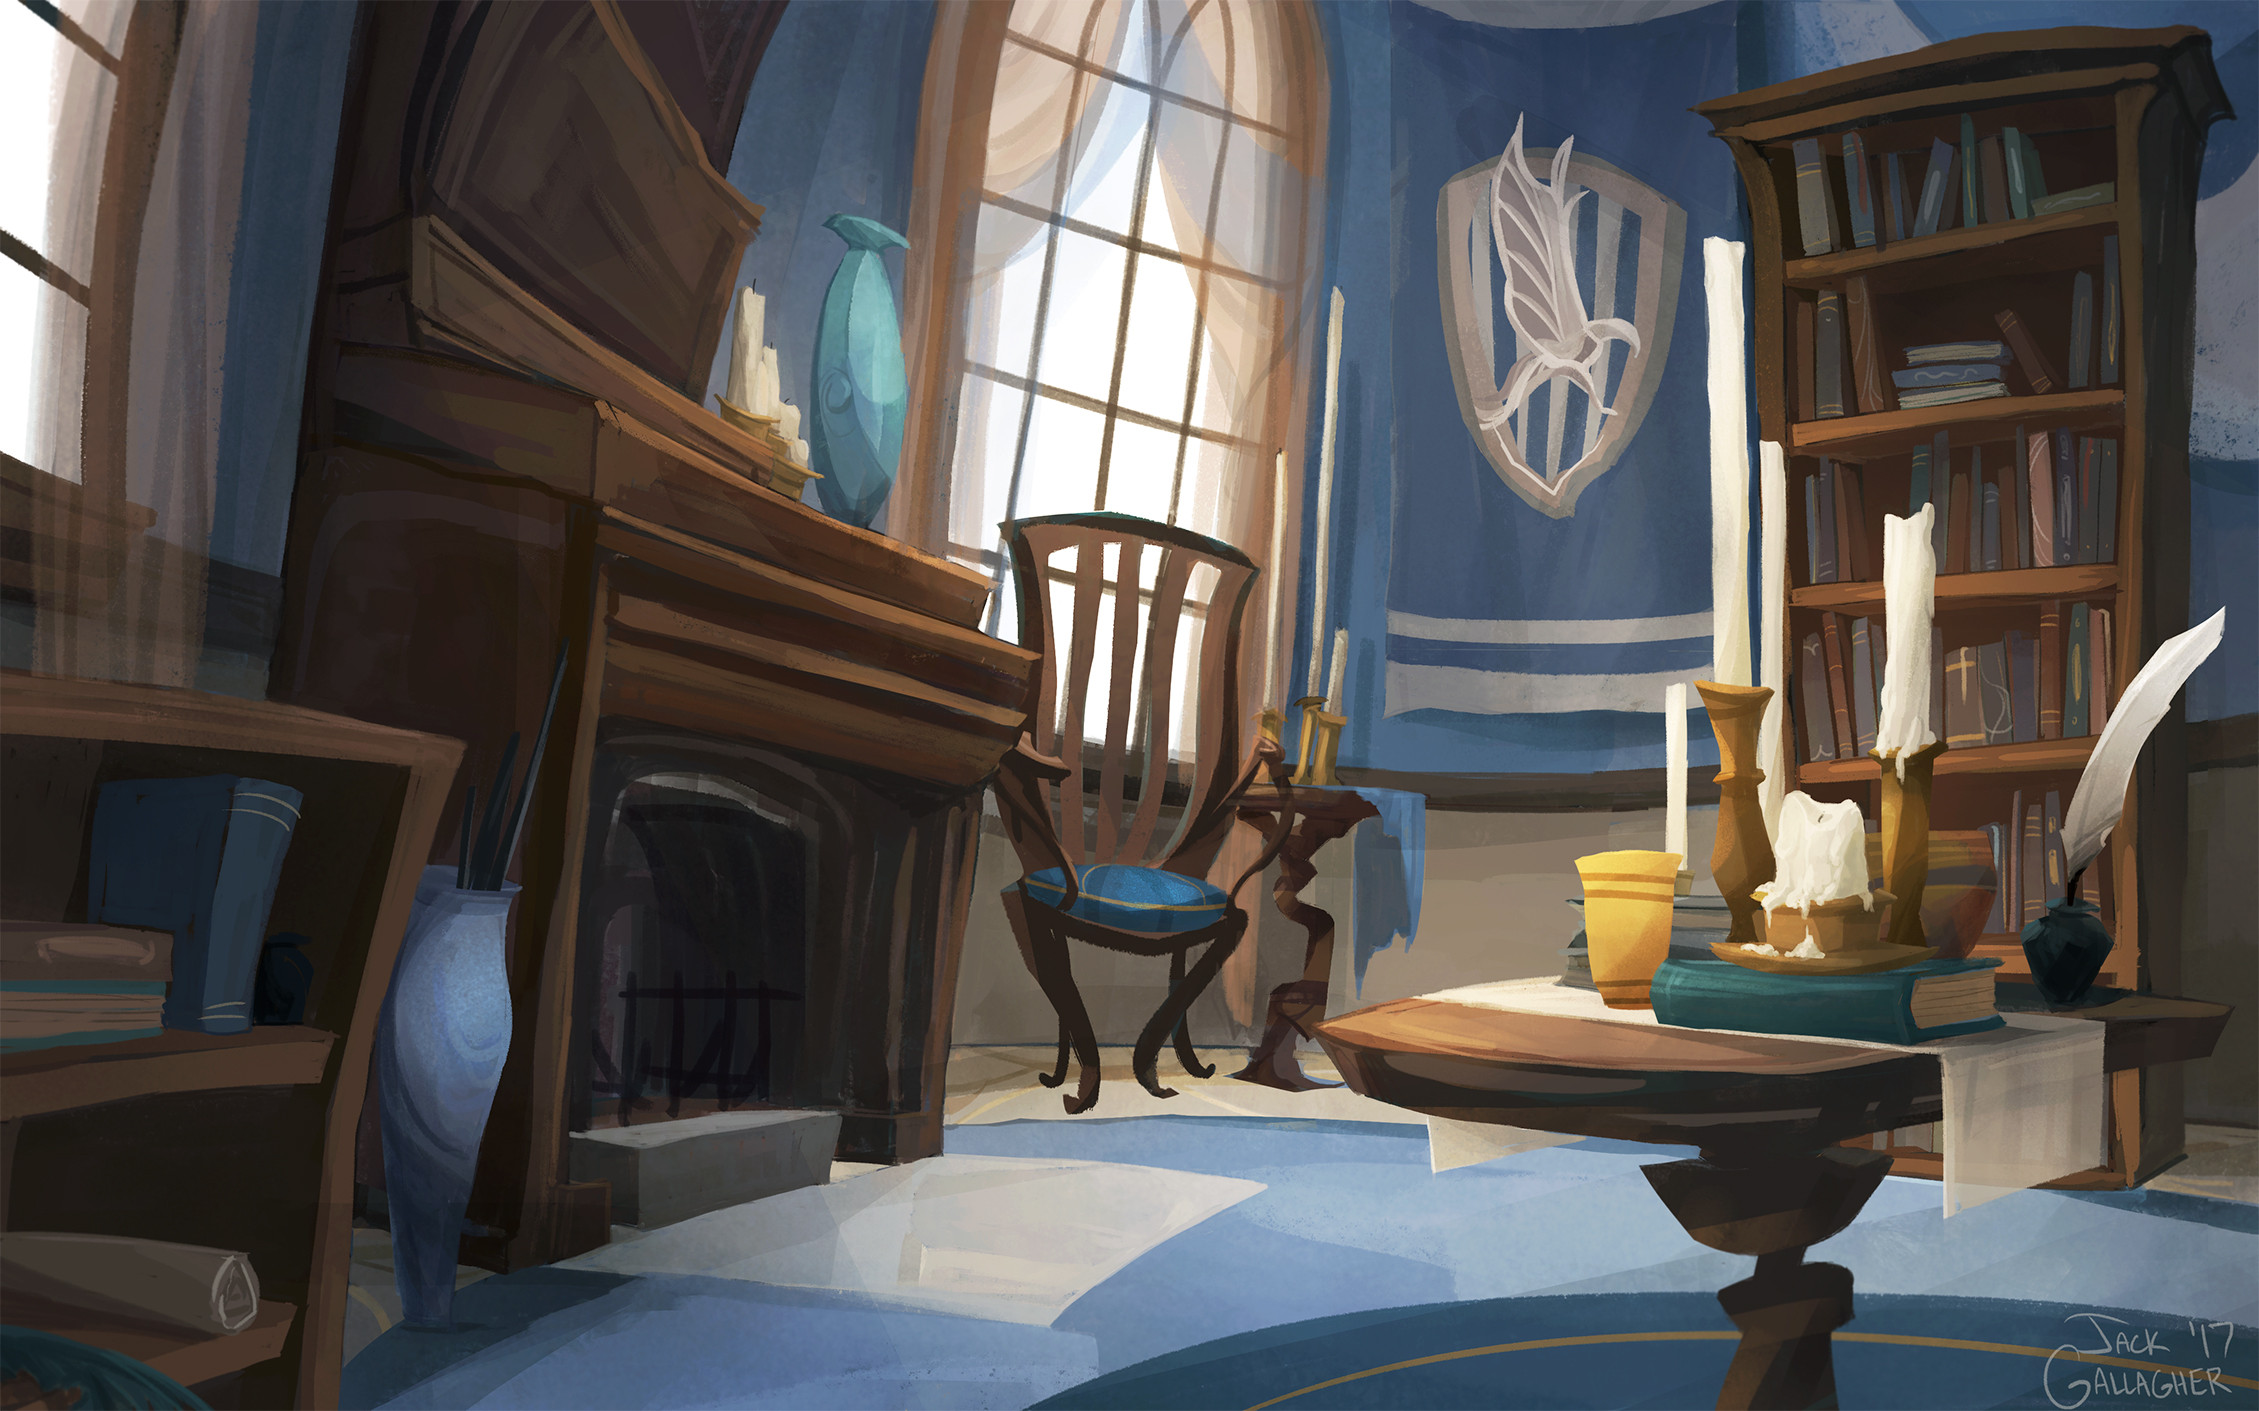 Harry Potter Bedroom Wallpaper  Ravenclaw mon Room by TofuSlaw on DeviantArt